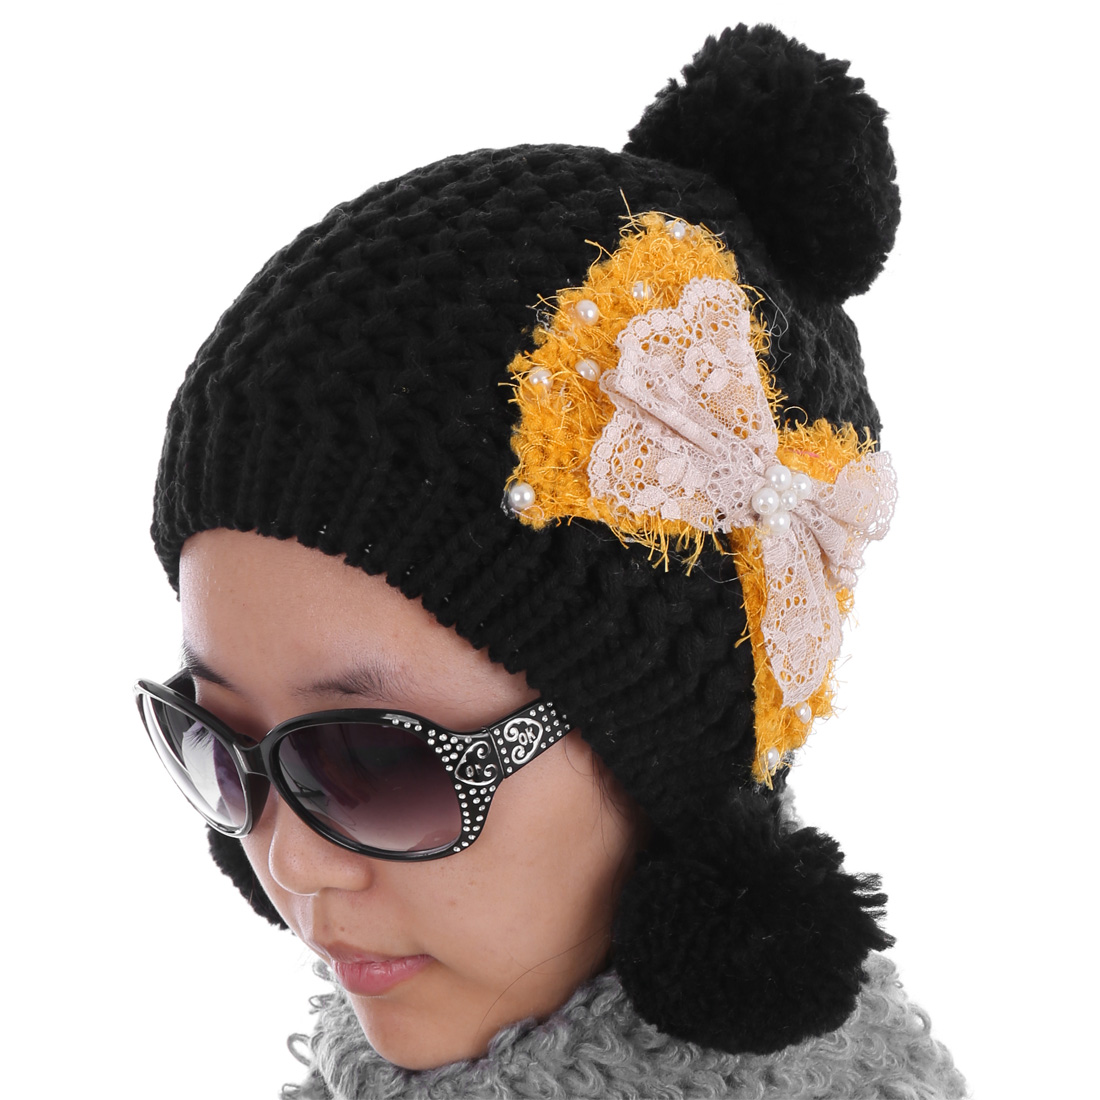 Women Bowknot Embellished Kintting Warm Hat Black